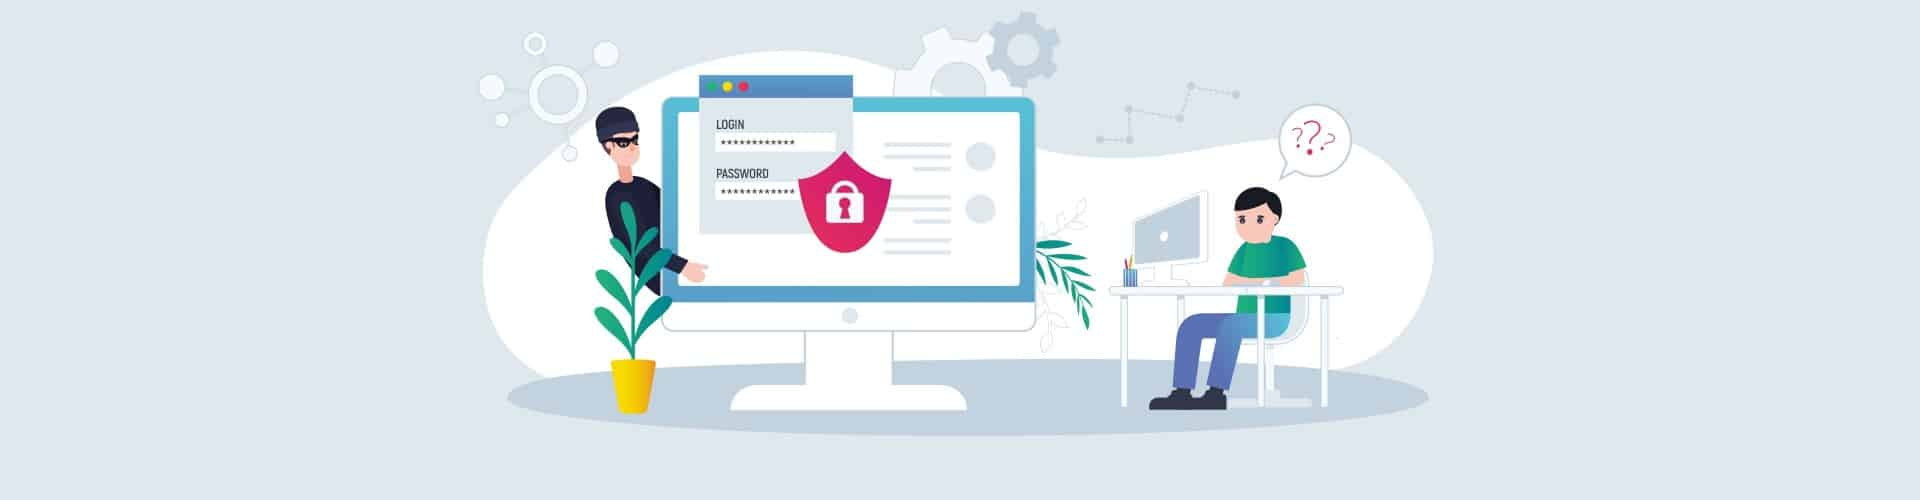 7 Web Application Security Vulnerabilities and How to Avoid Them